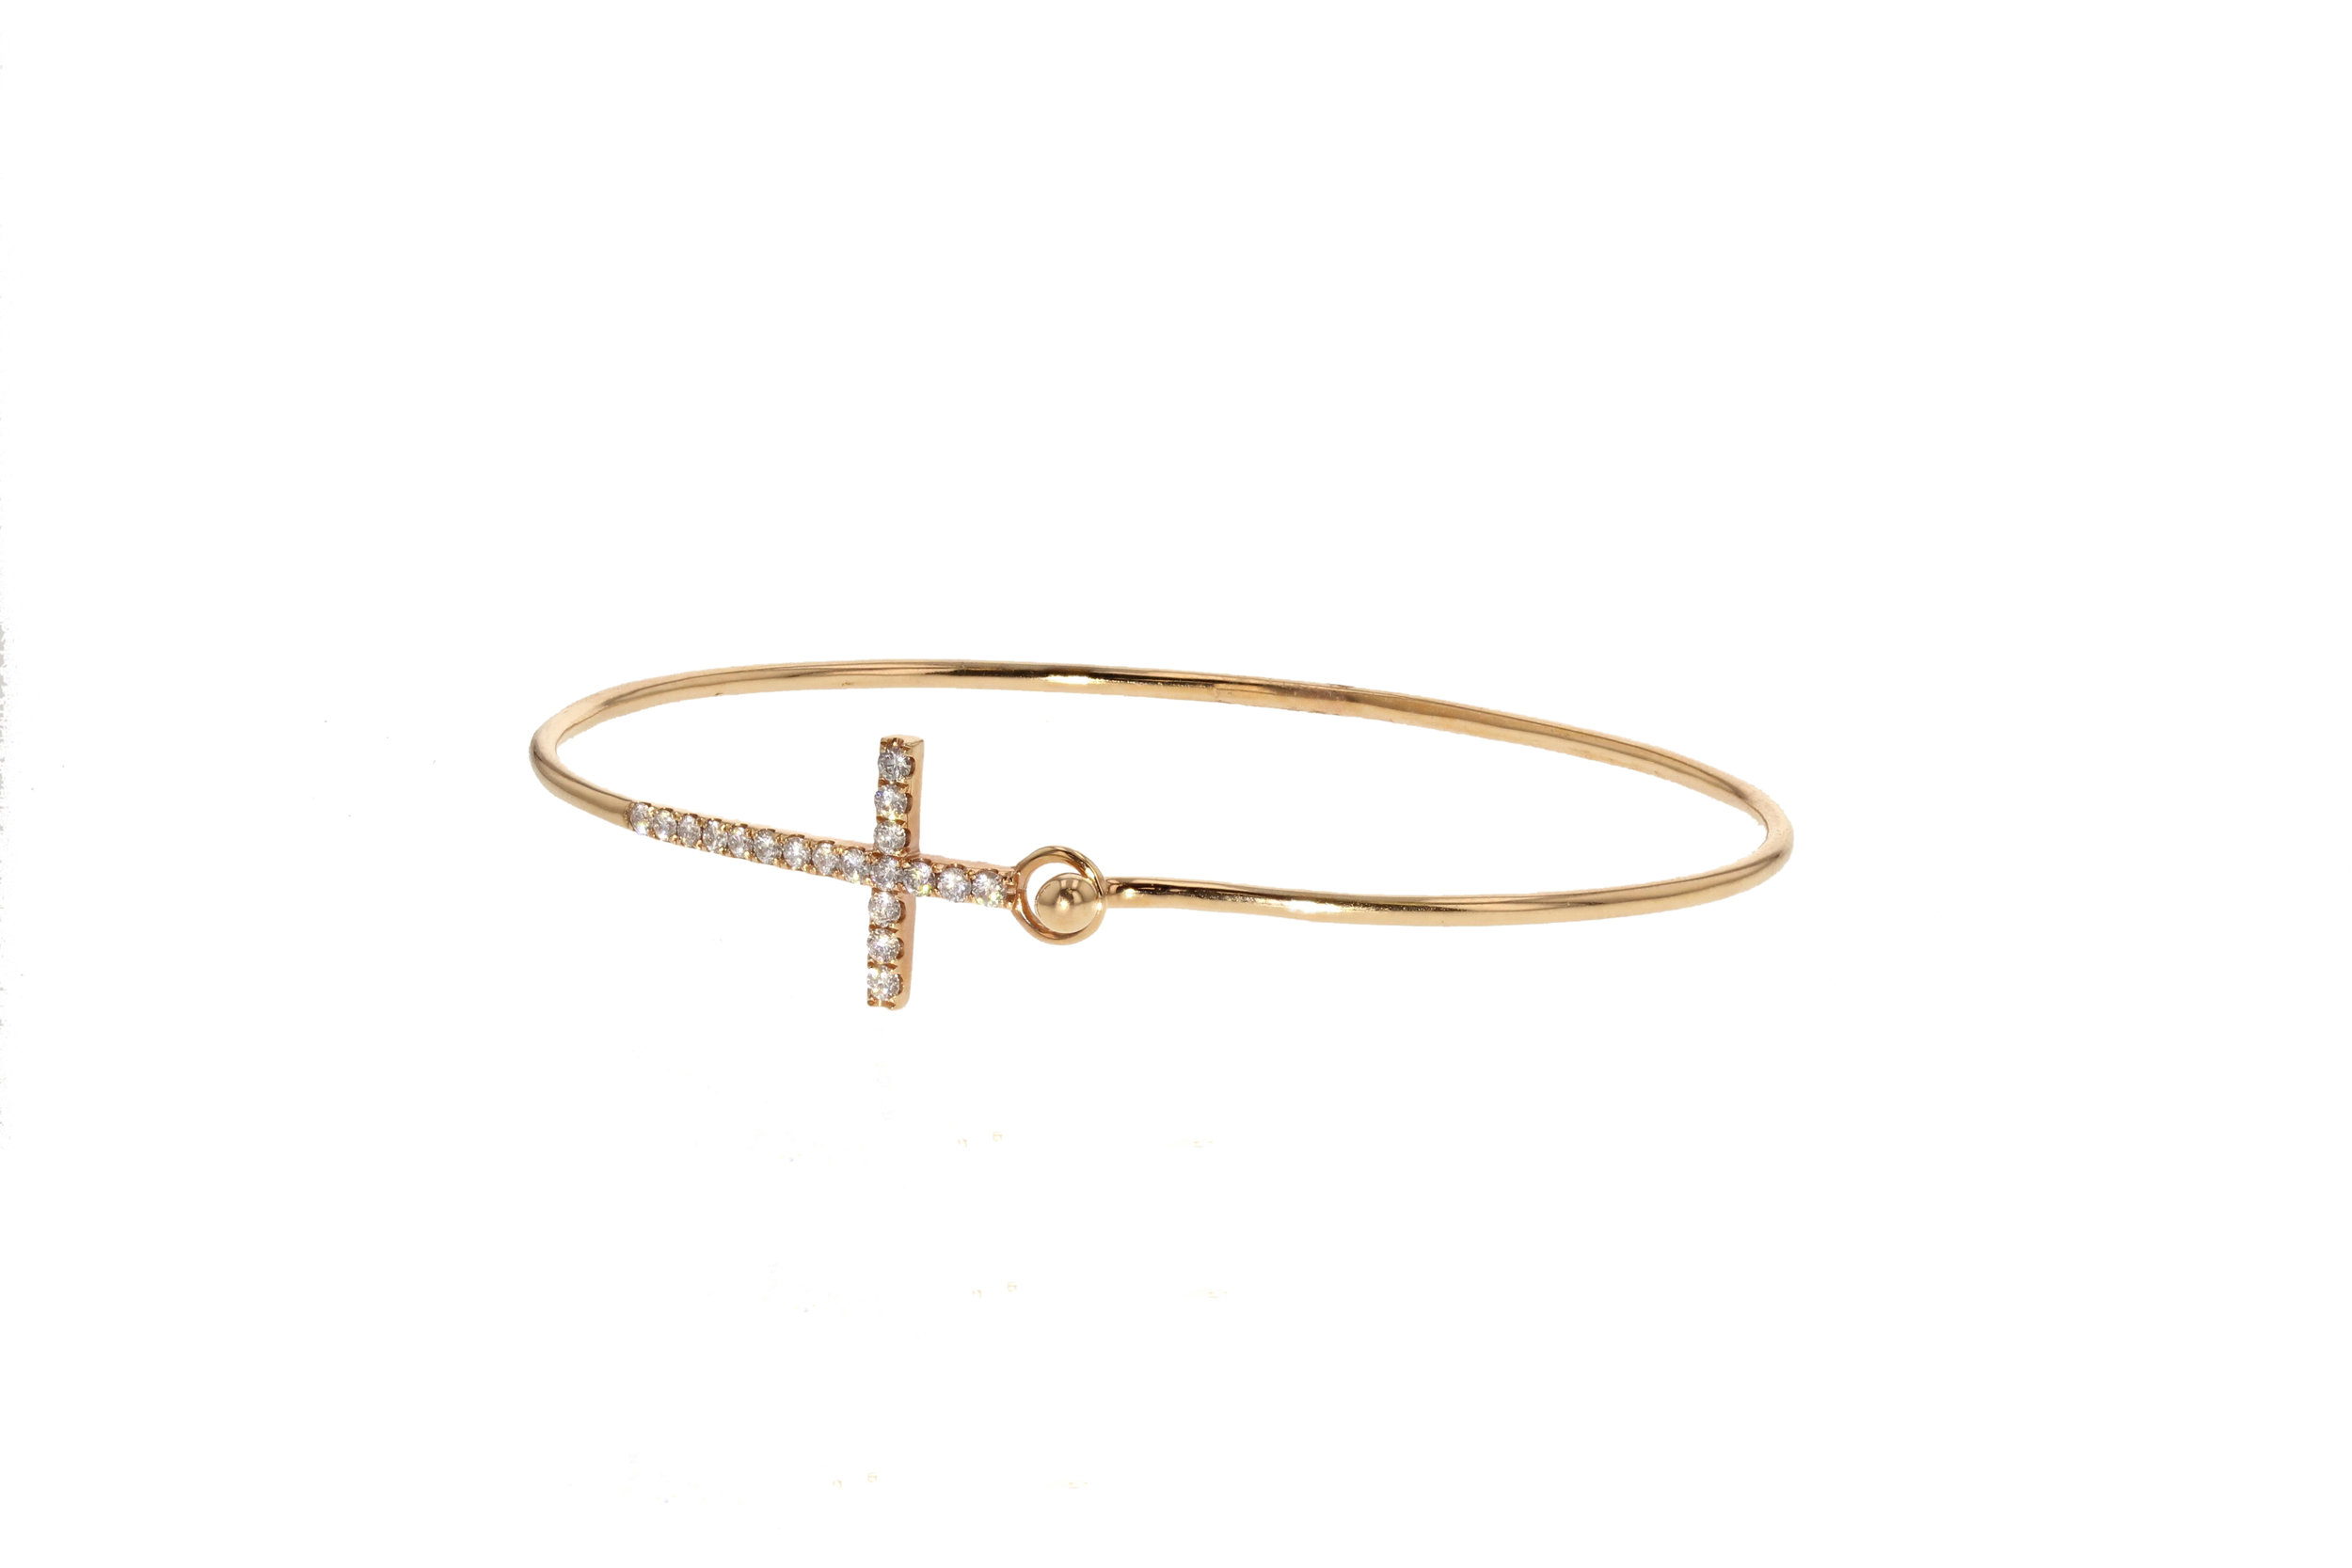 Pink Gold Diamond Pavé Bangle